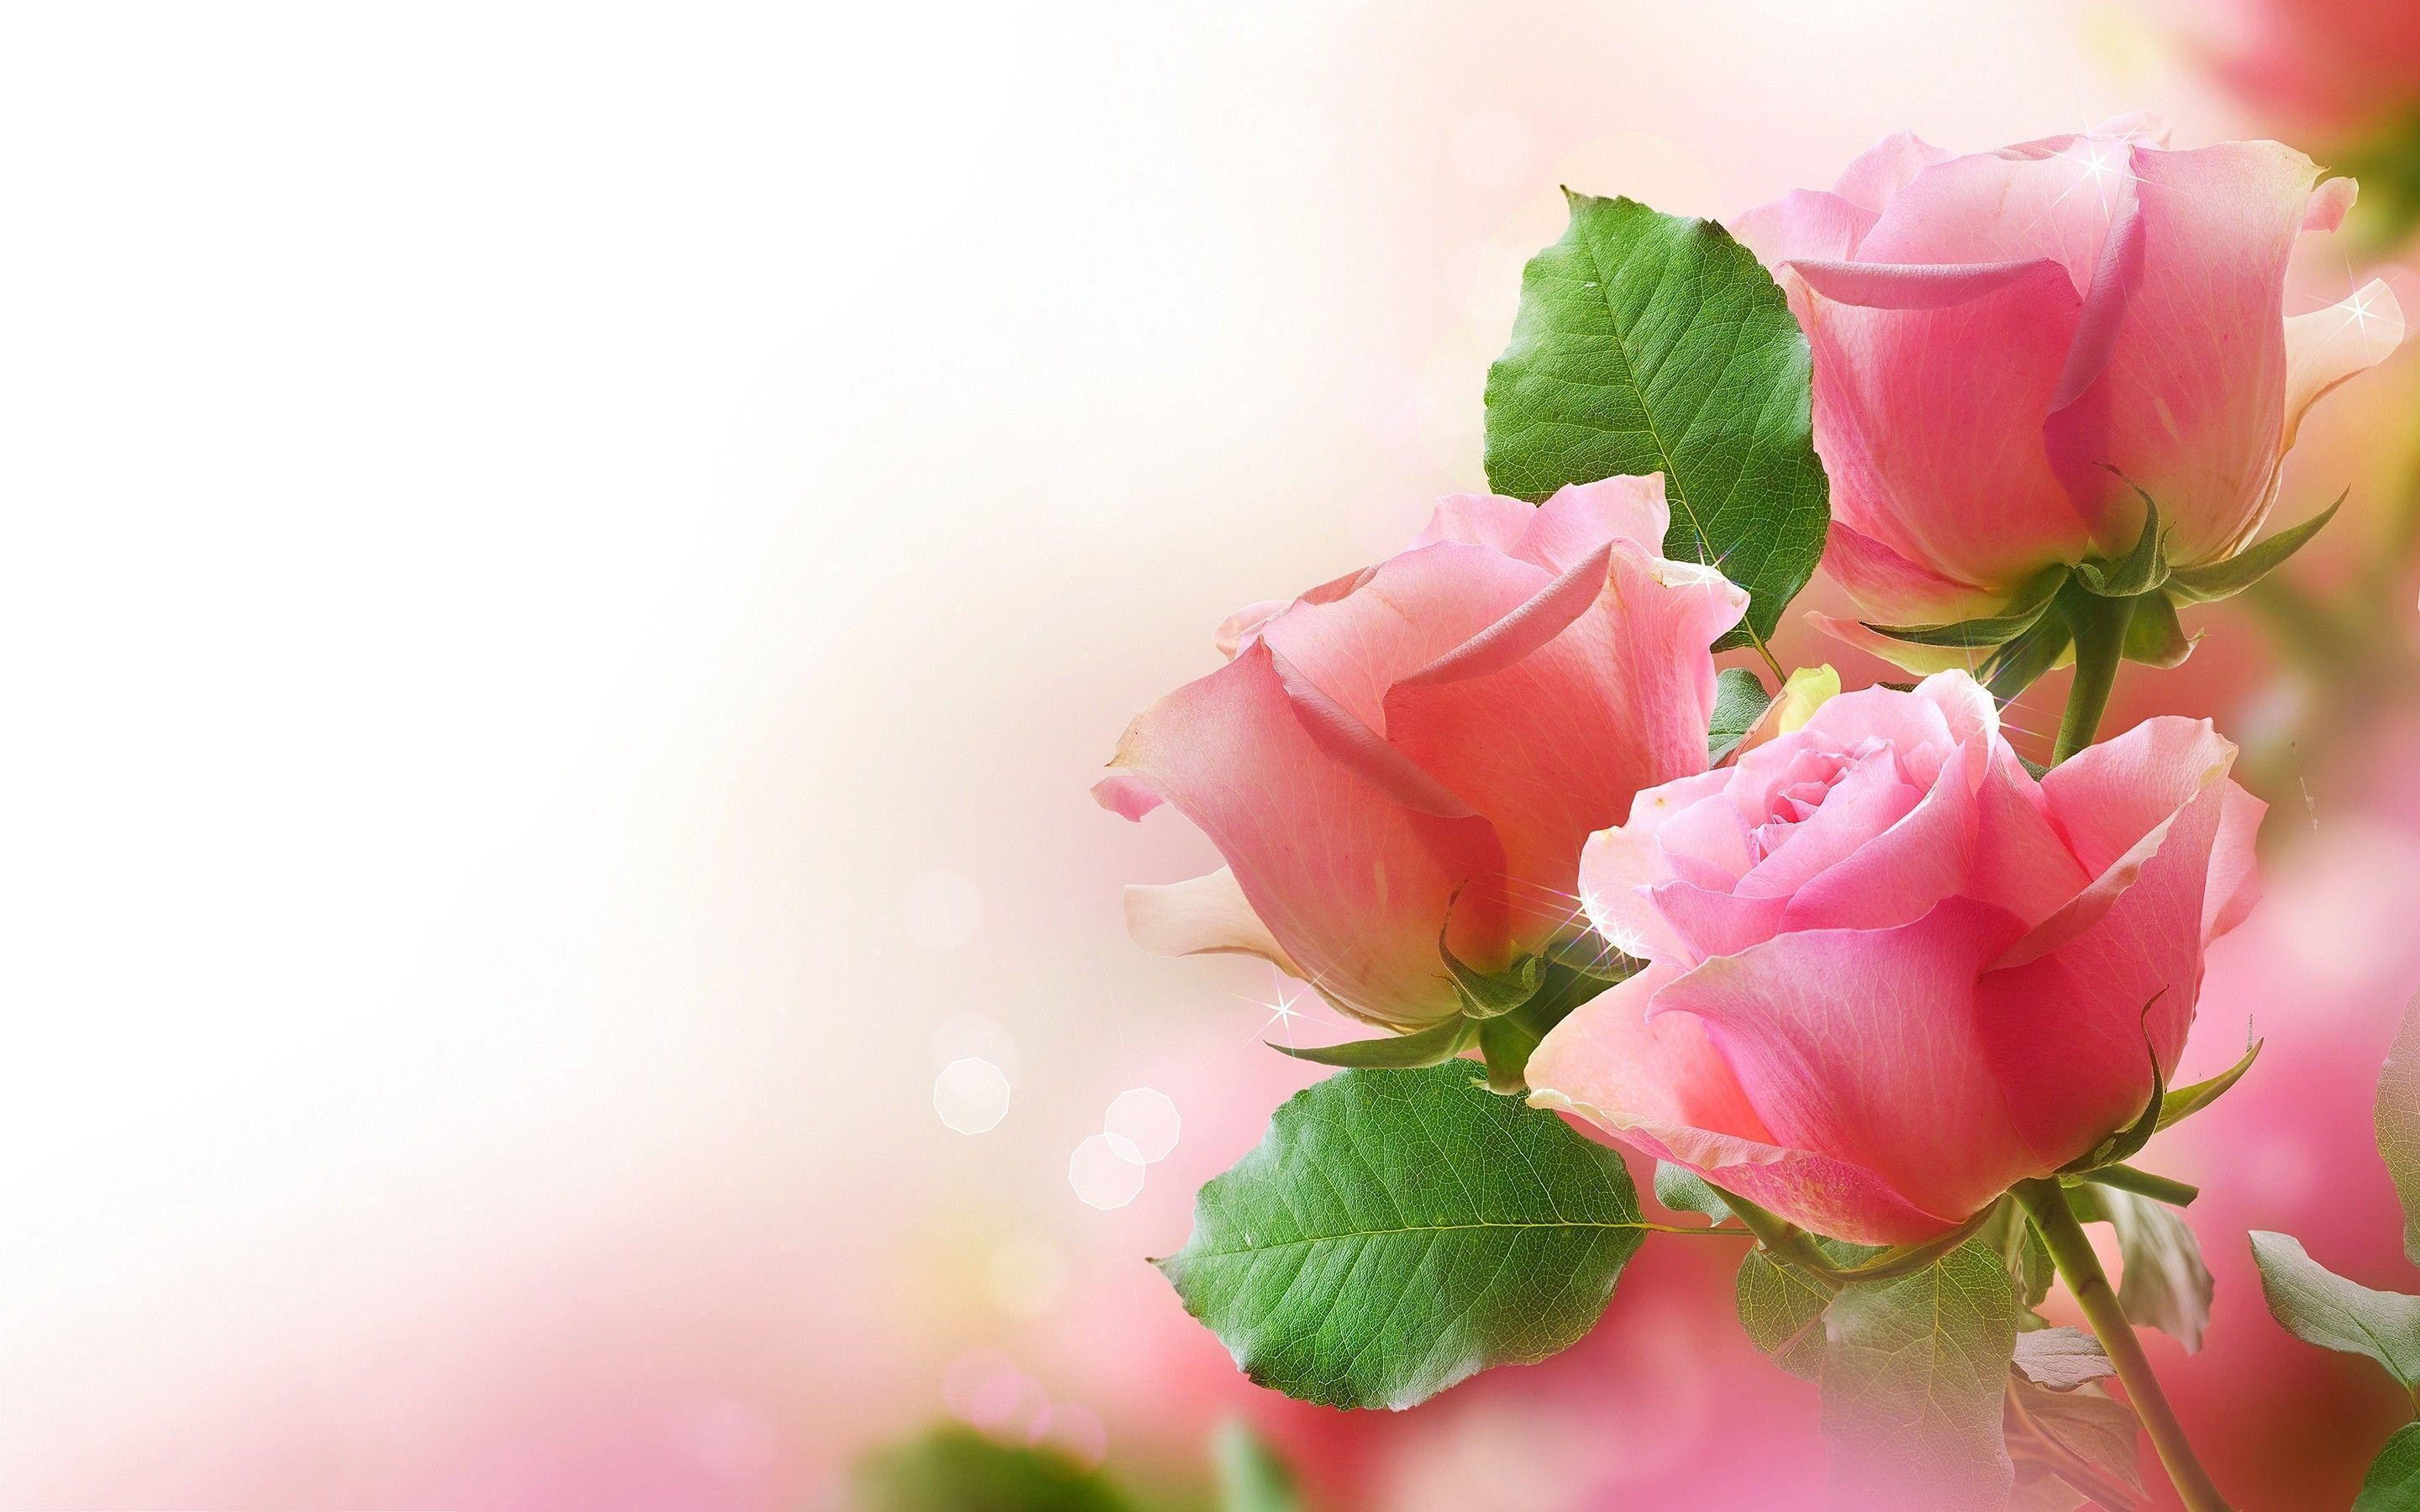 Roses Wallpaper For Desktop 46 Images